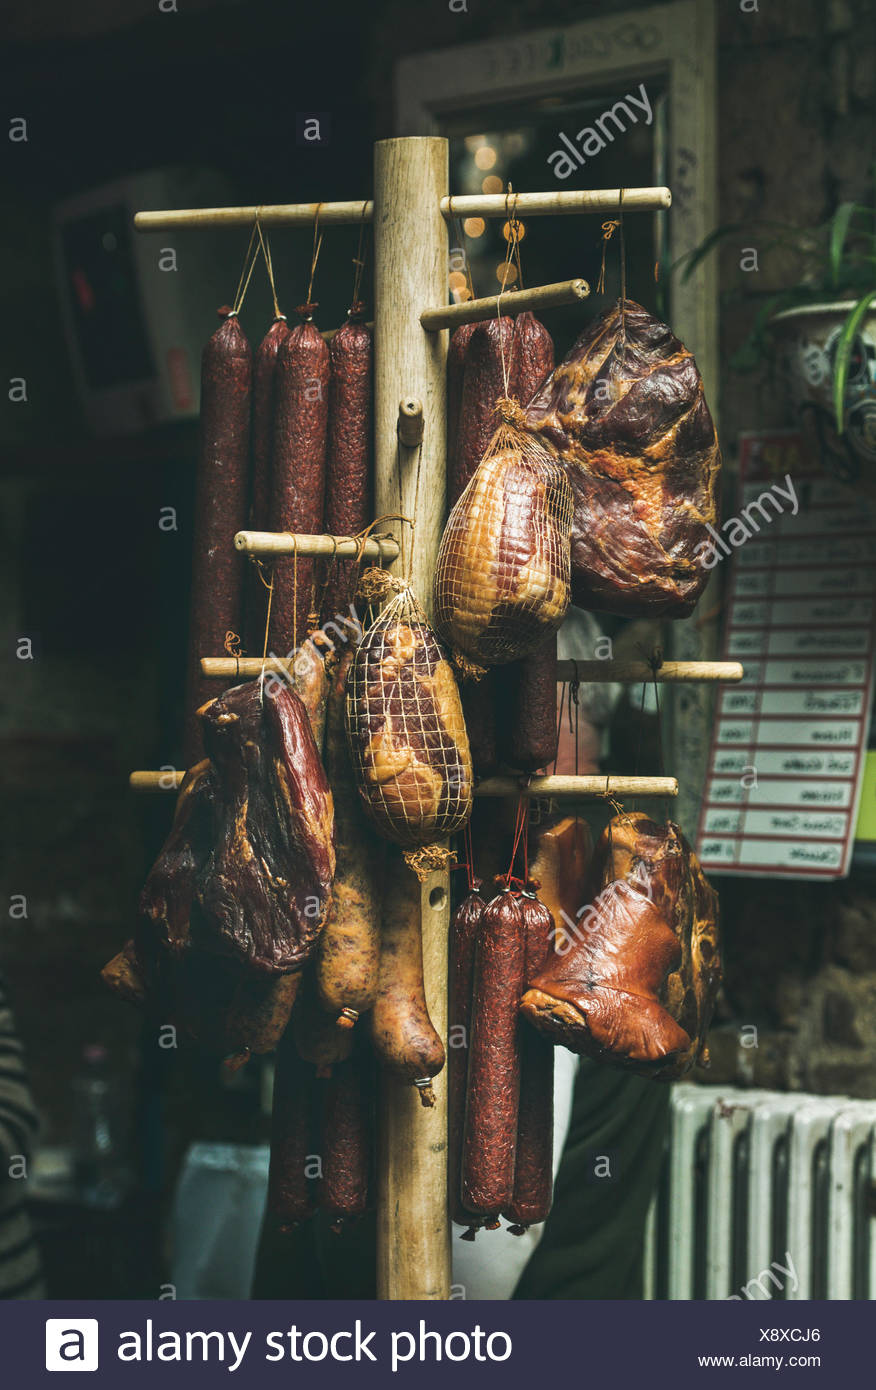 Variety of traditional Hungarian smoked meat and sausages at a  farmers market. - Stock Image